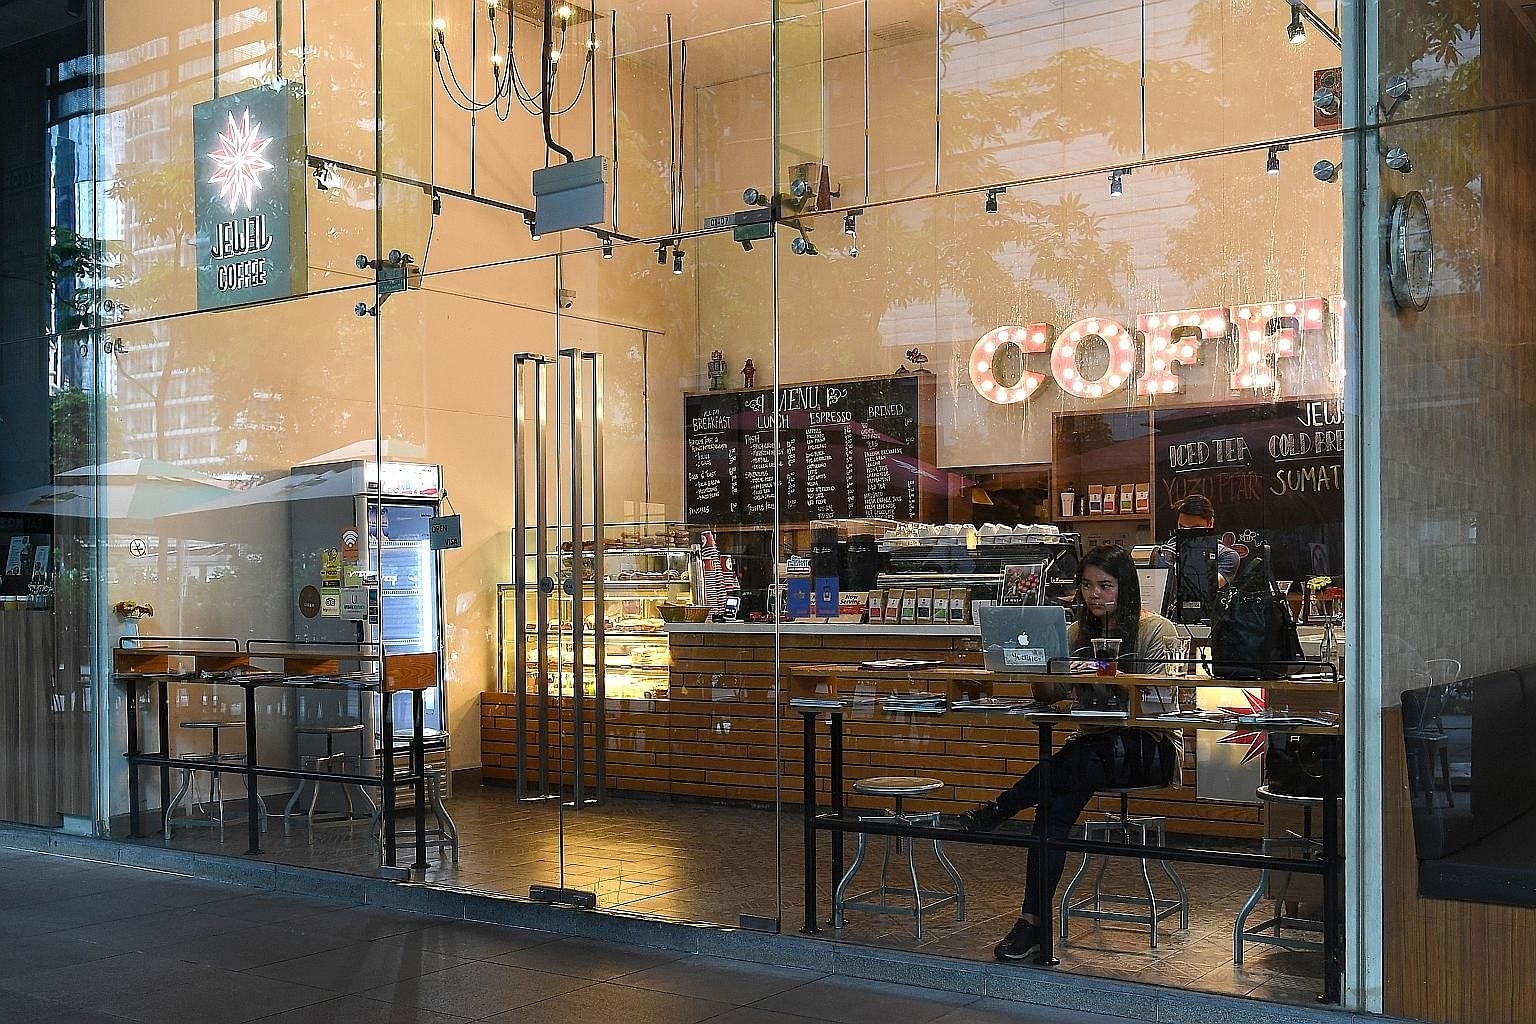 There will be a total of 25 coffee-related workshops conducted by experts from Oriole Coffee + Bar, Jewel Coffee (above), Seed Coffee, Common Man Coffee Roasters and more at the festival, which runs from Aug 3 to 6 at Marina Bay Cruise Centre.